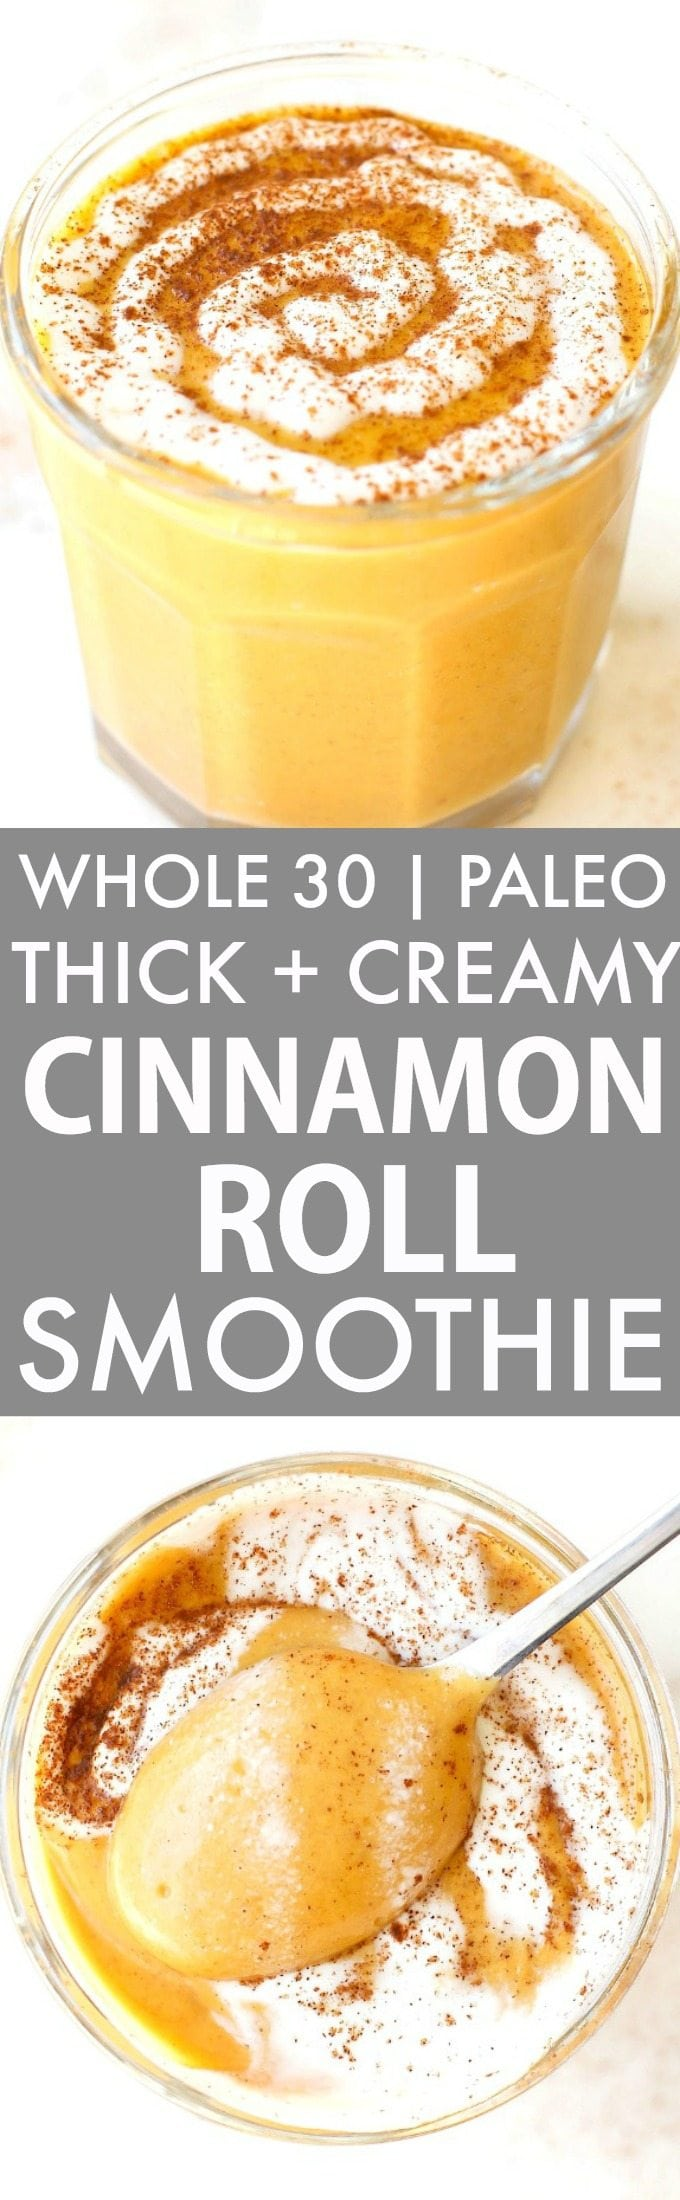 Thick and Creamy Cinnamon Roll Smoothie (Whole 30, Paleo, V, GF)- Healthy, Wholesome, hearty and EASY, this thick and creamy smoothie is JUST like a cinnamon roll- Cozy, comforting and keeps you satisfied and filling! Enjoy hot or cold! {whole30, paleo, vegan, gluten free recipe}- thebigmansworld.com